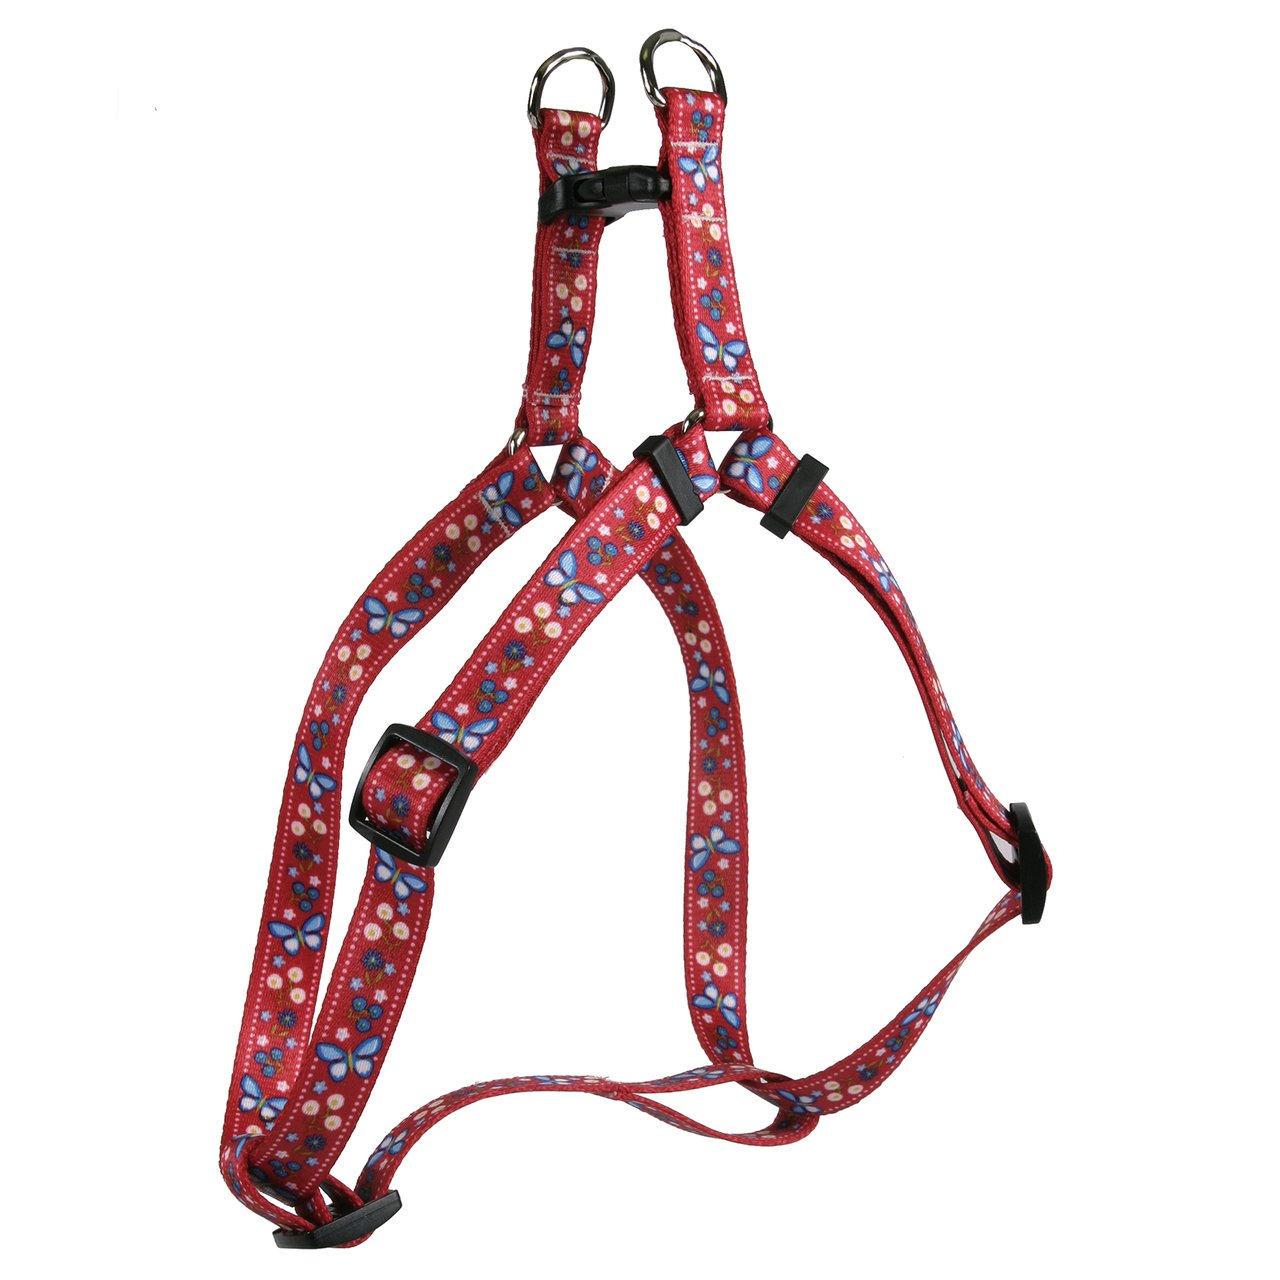 Yellow Dog Design Festive Butterfly Red Step-in Dog Harness, Small by Yellow Dog Design